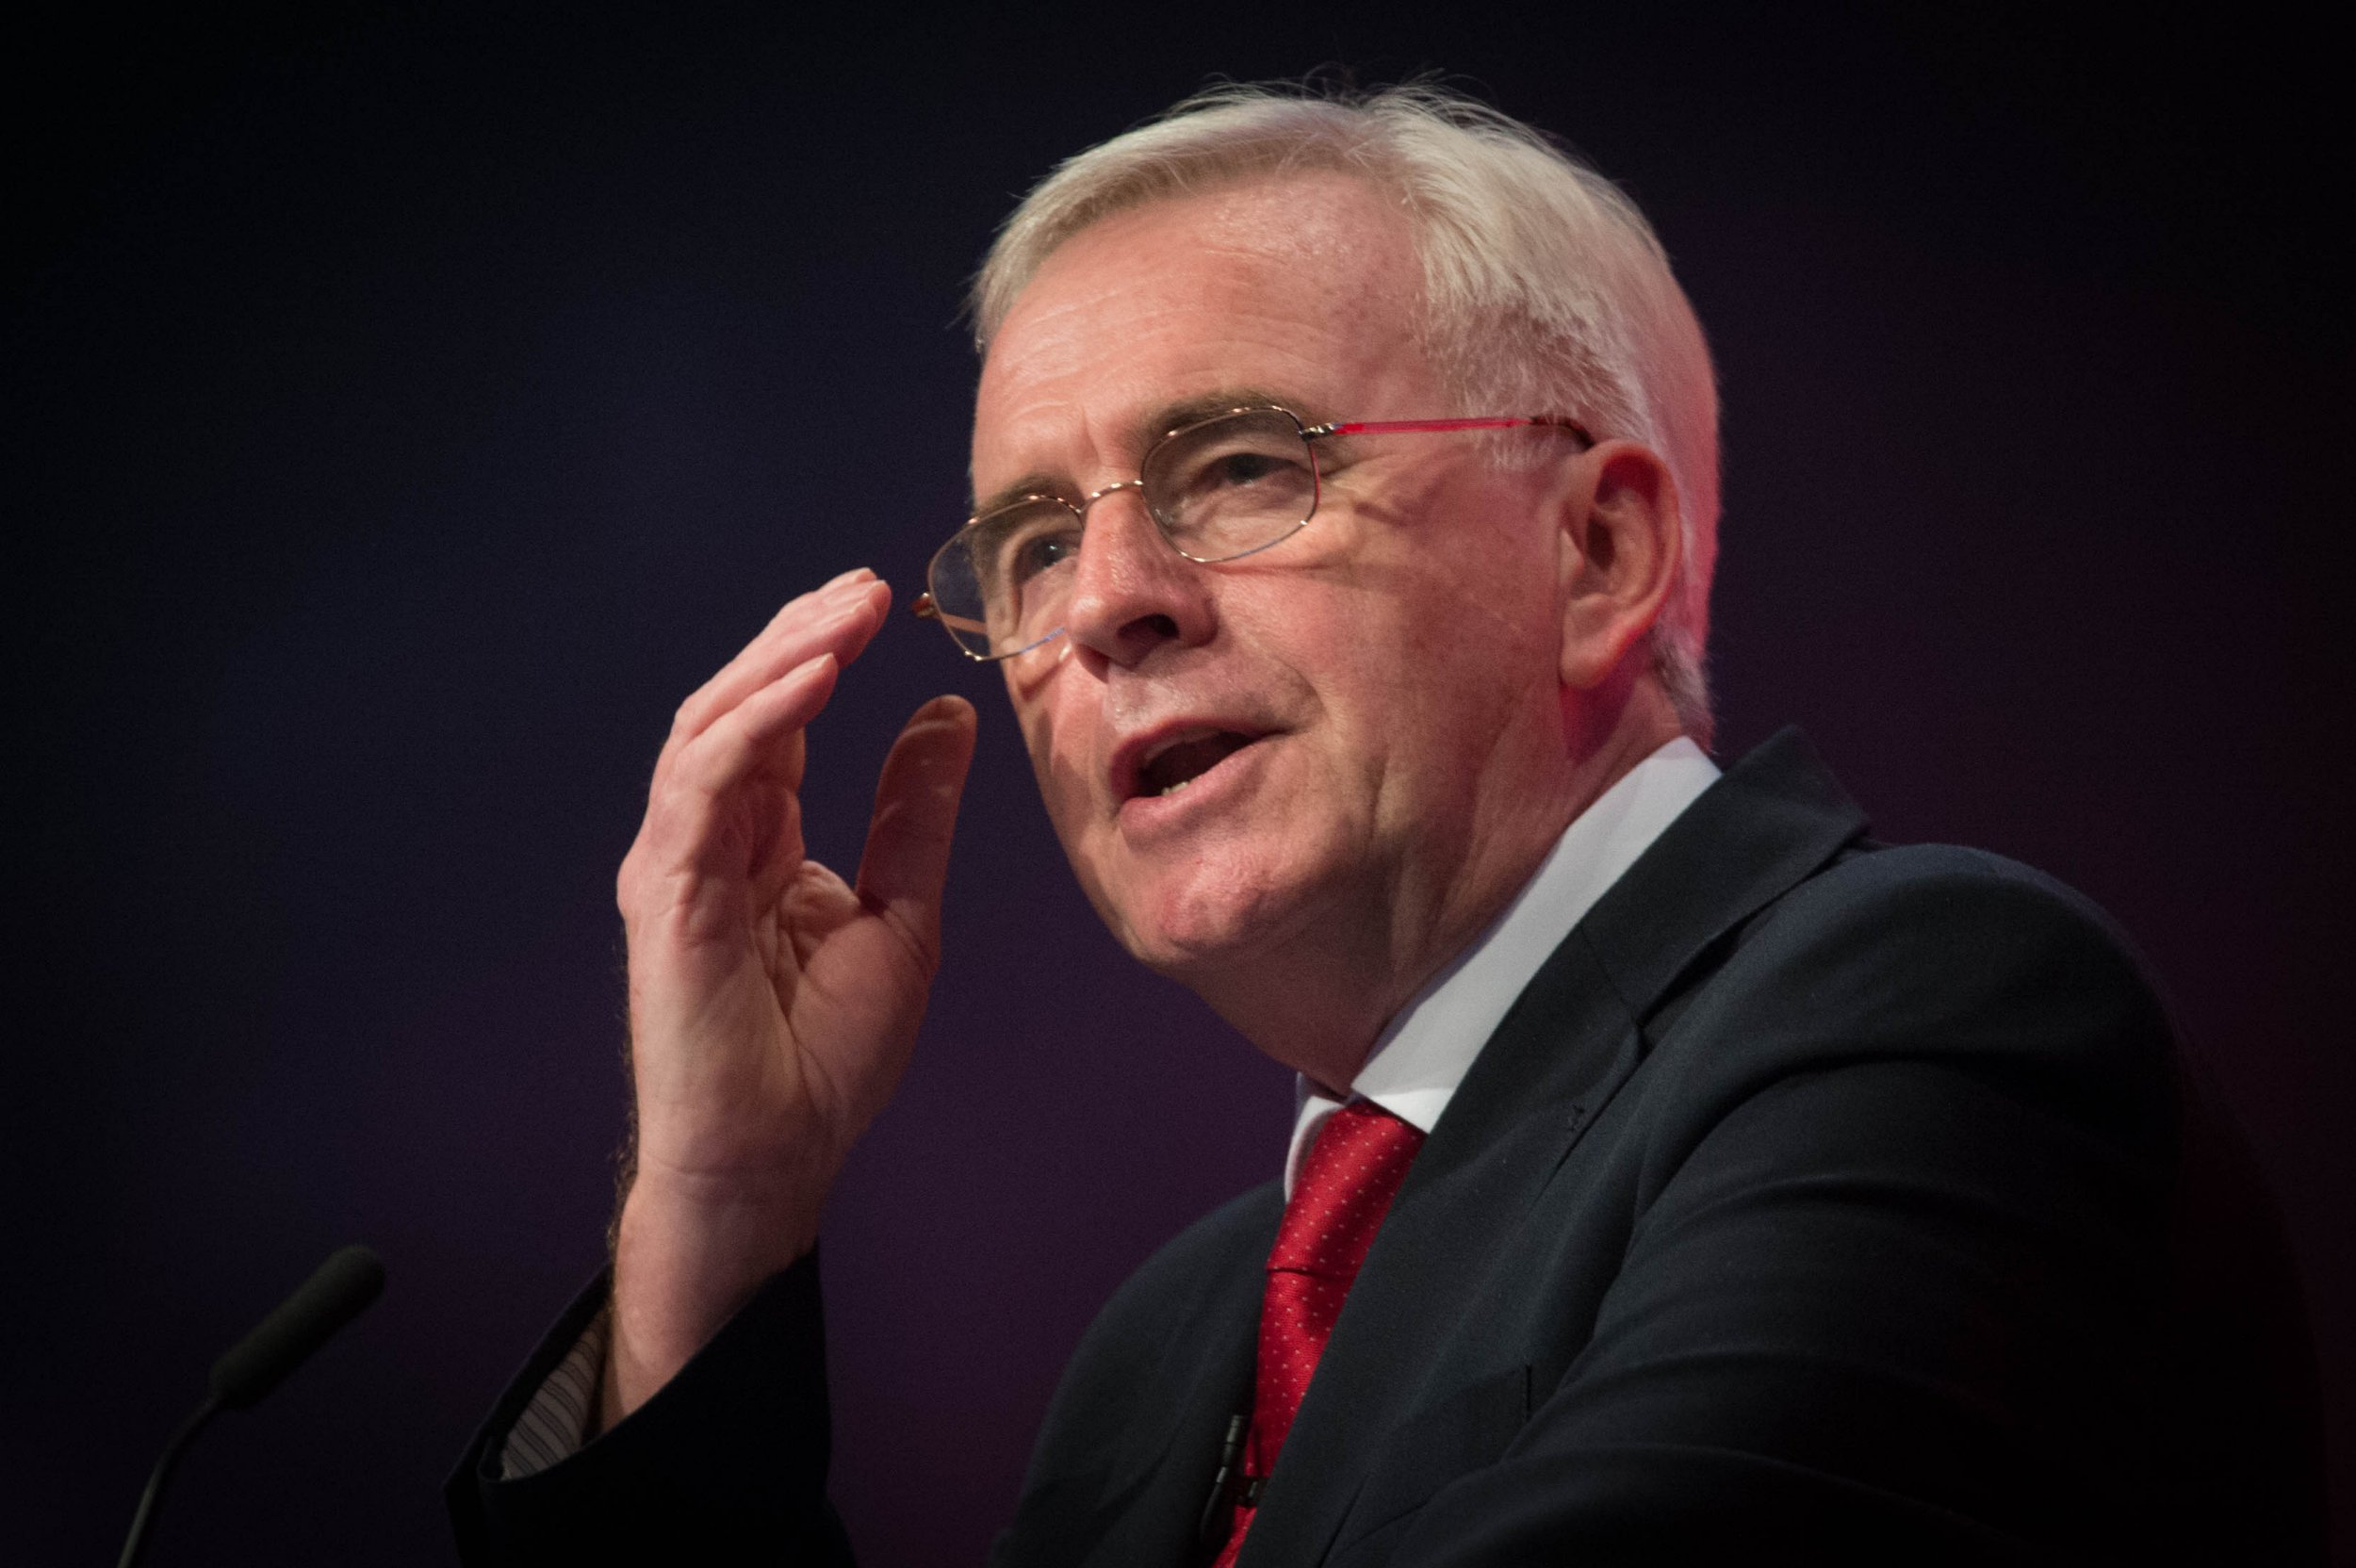 Shadow chancellor John McDonnell addressing the Labour Party annual conference at the Brighton Centre, Brighton.